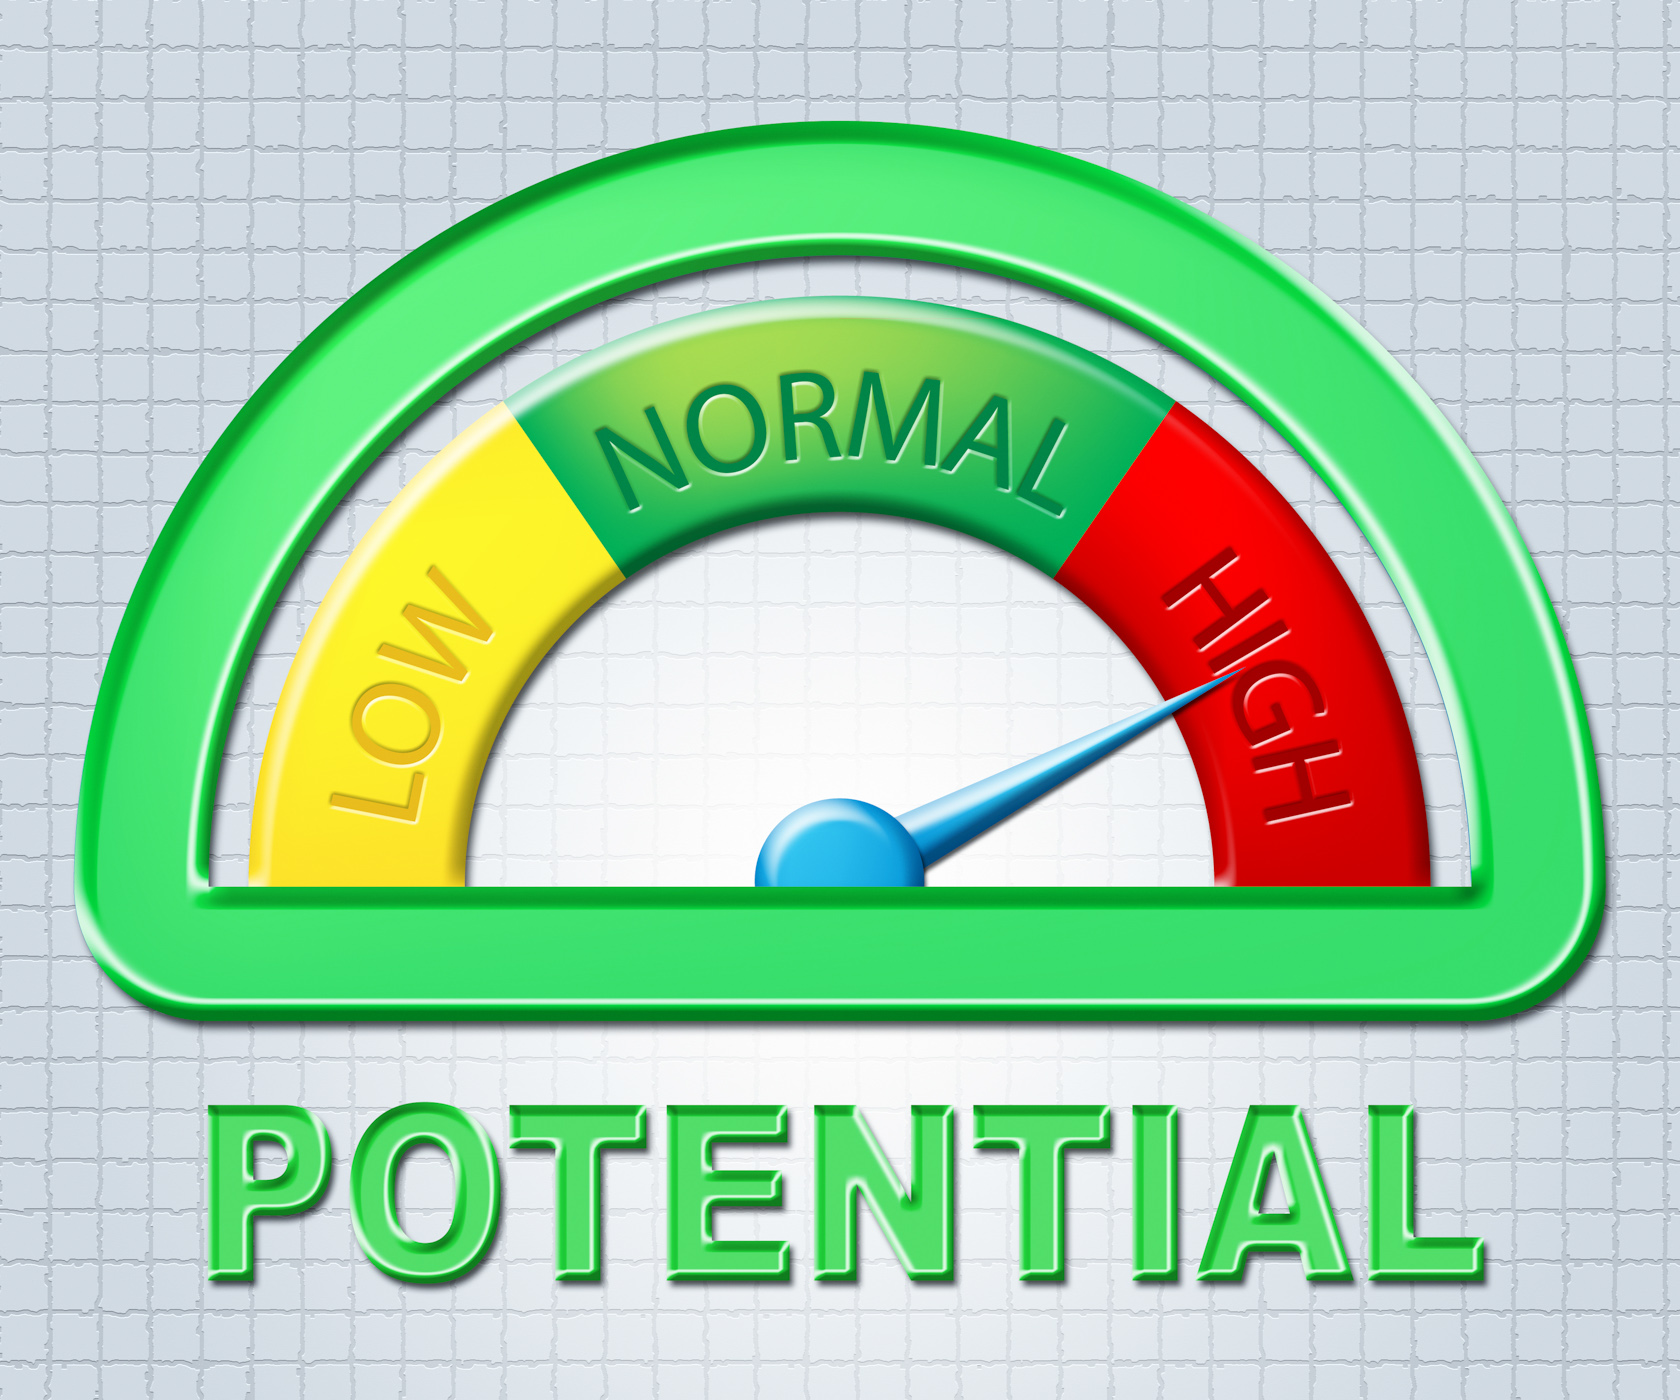 High potential means cleverness skill and capacity photo